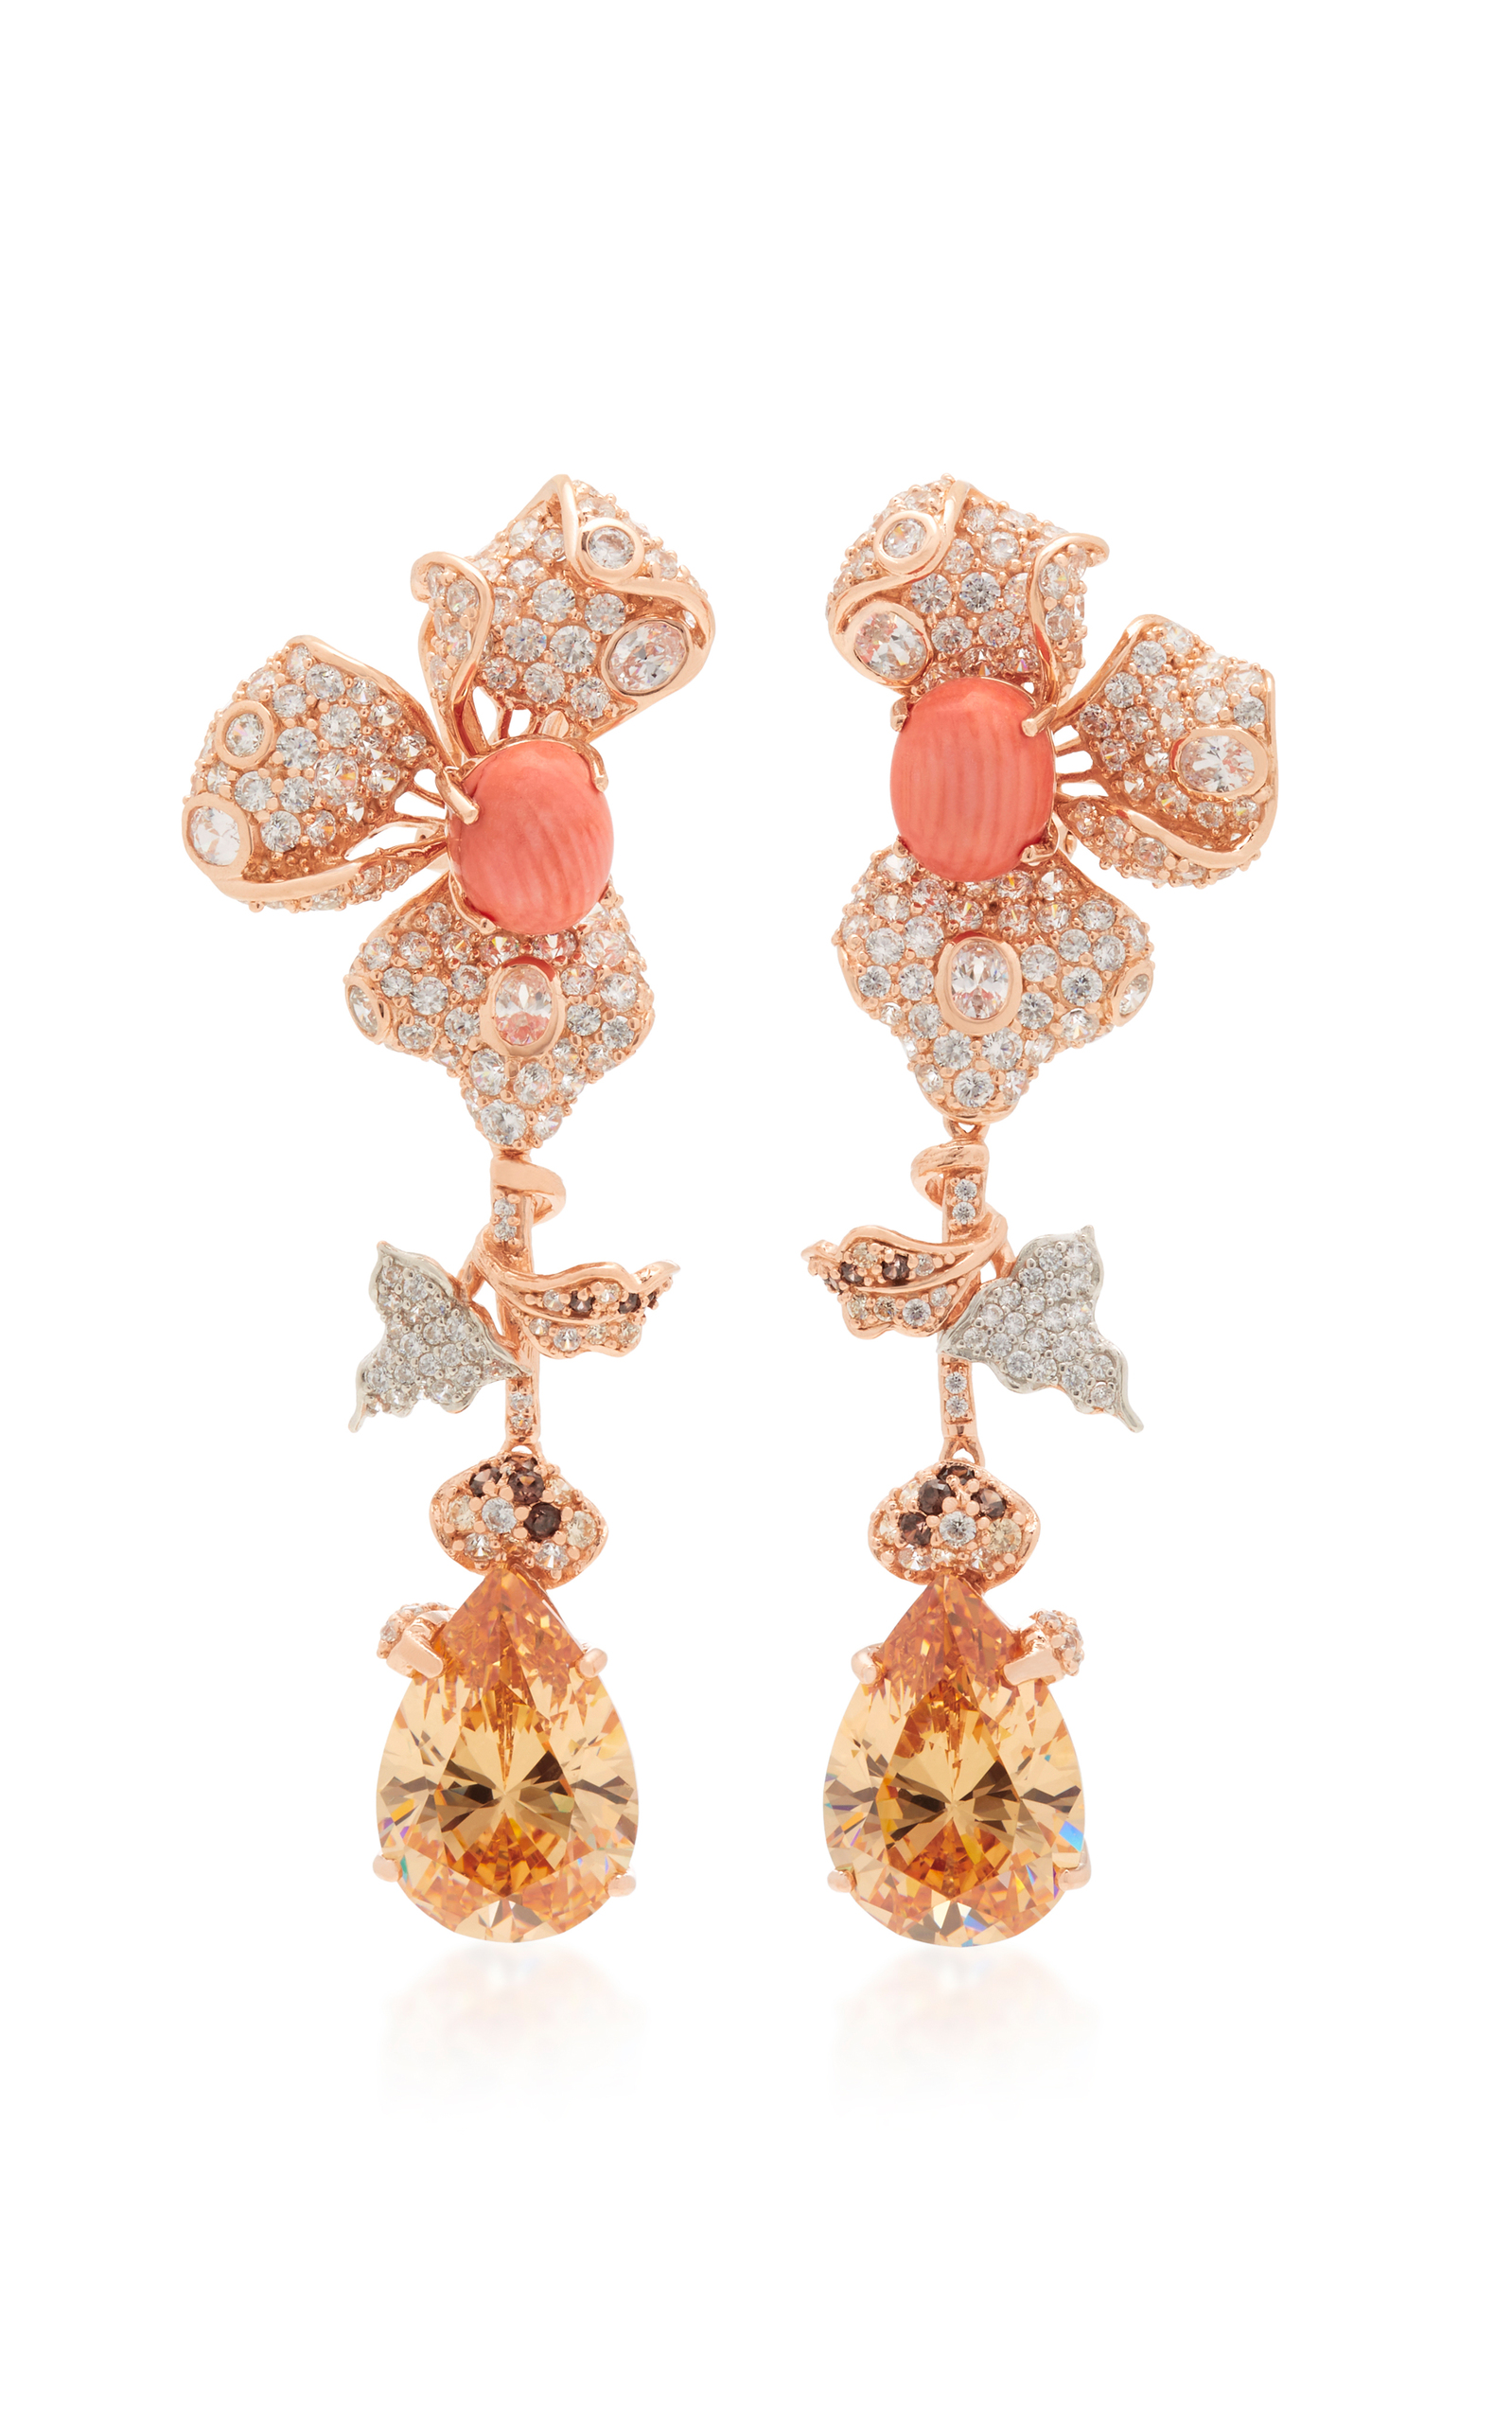 ANABELA CHAN 18K ROSE GOLD ORCHID CITRINE AND DIAMOND EARRINGS